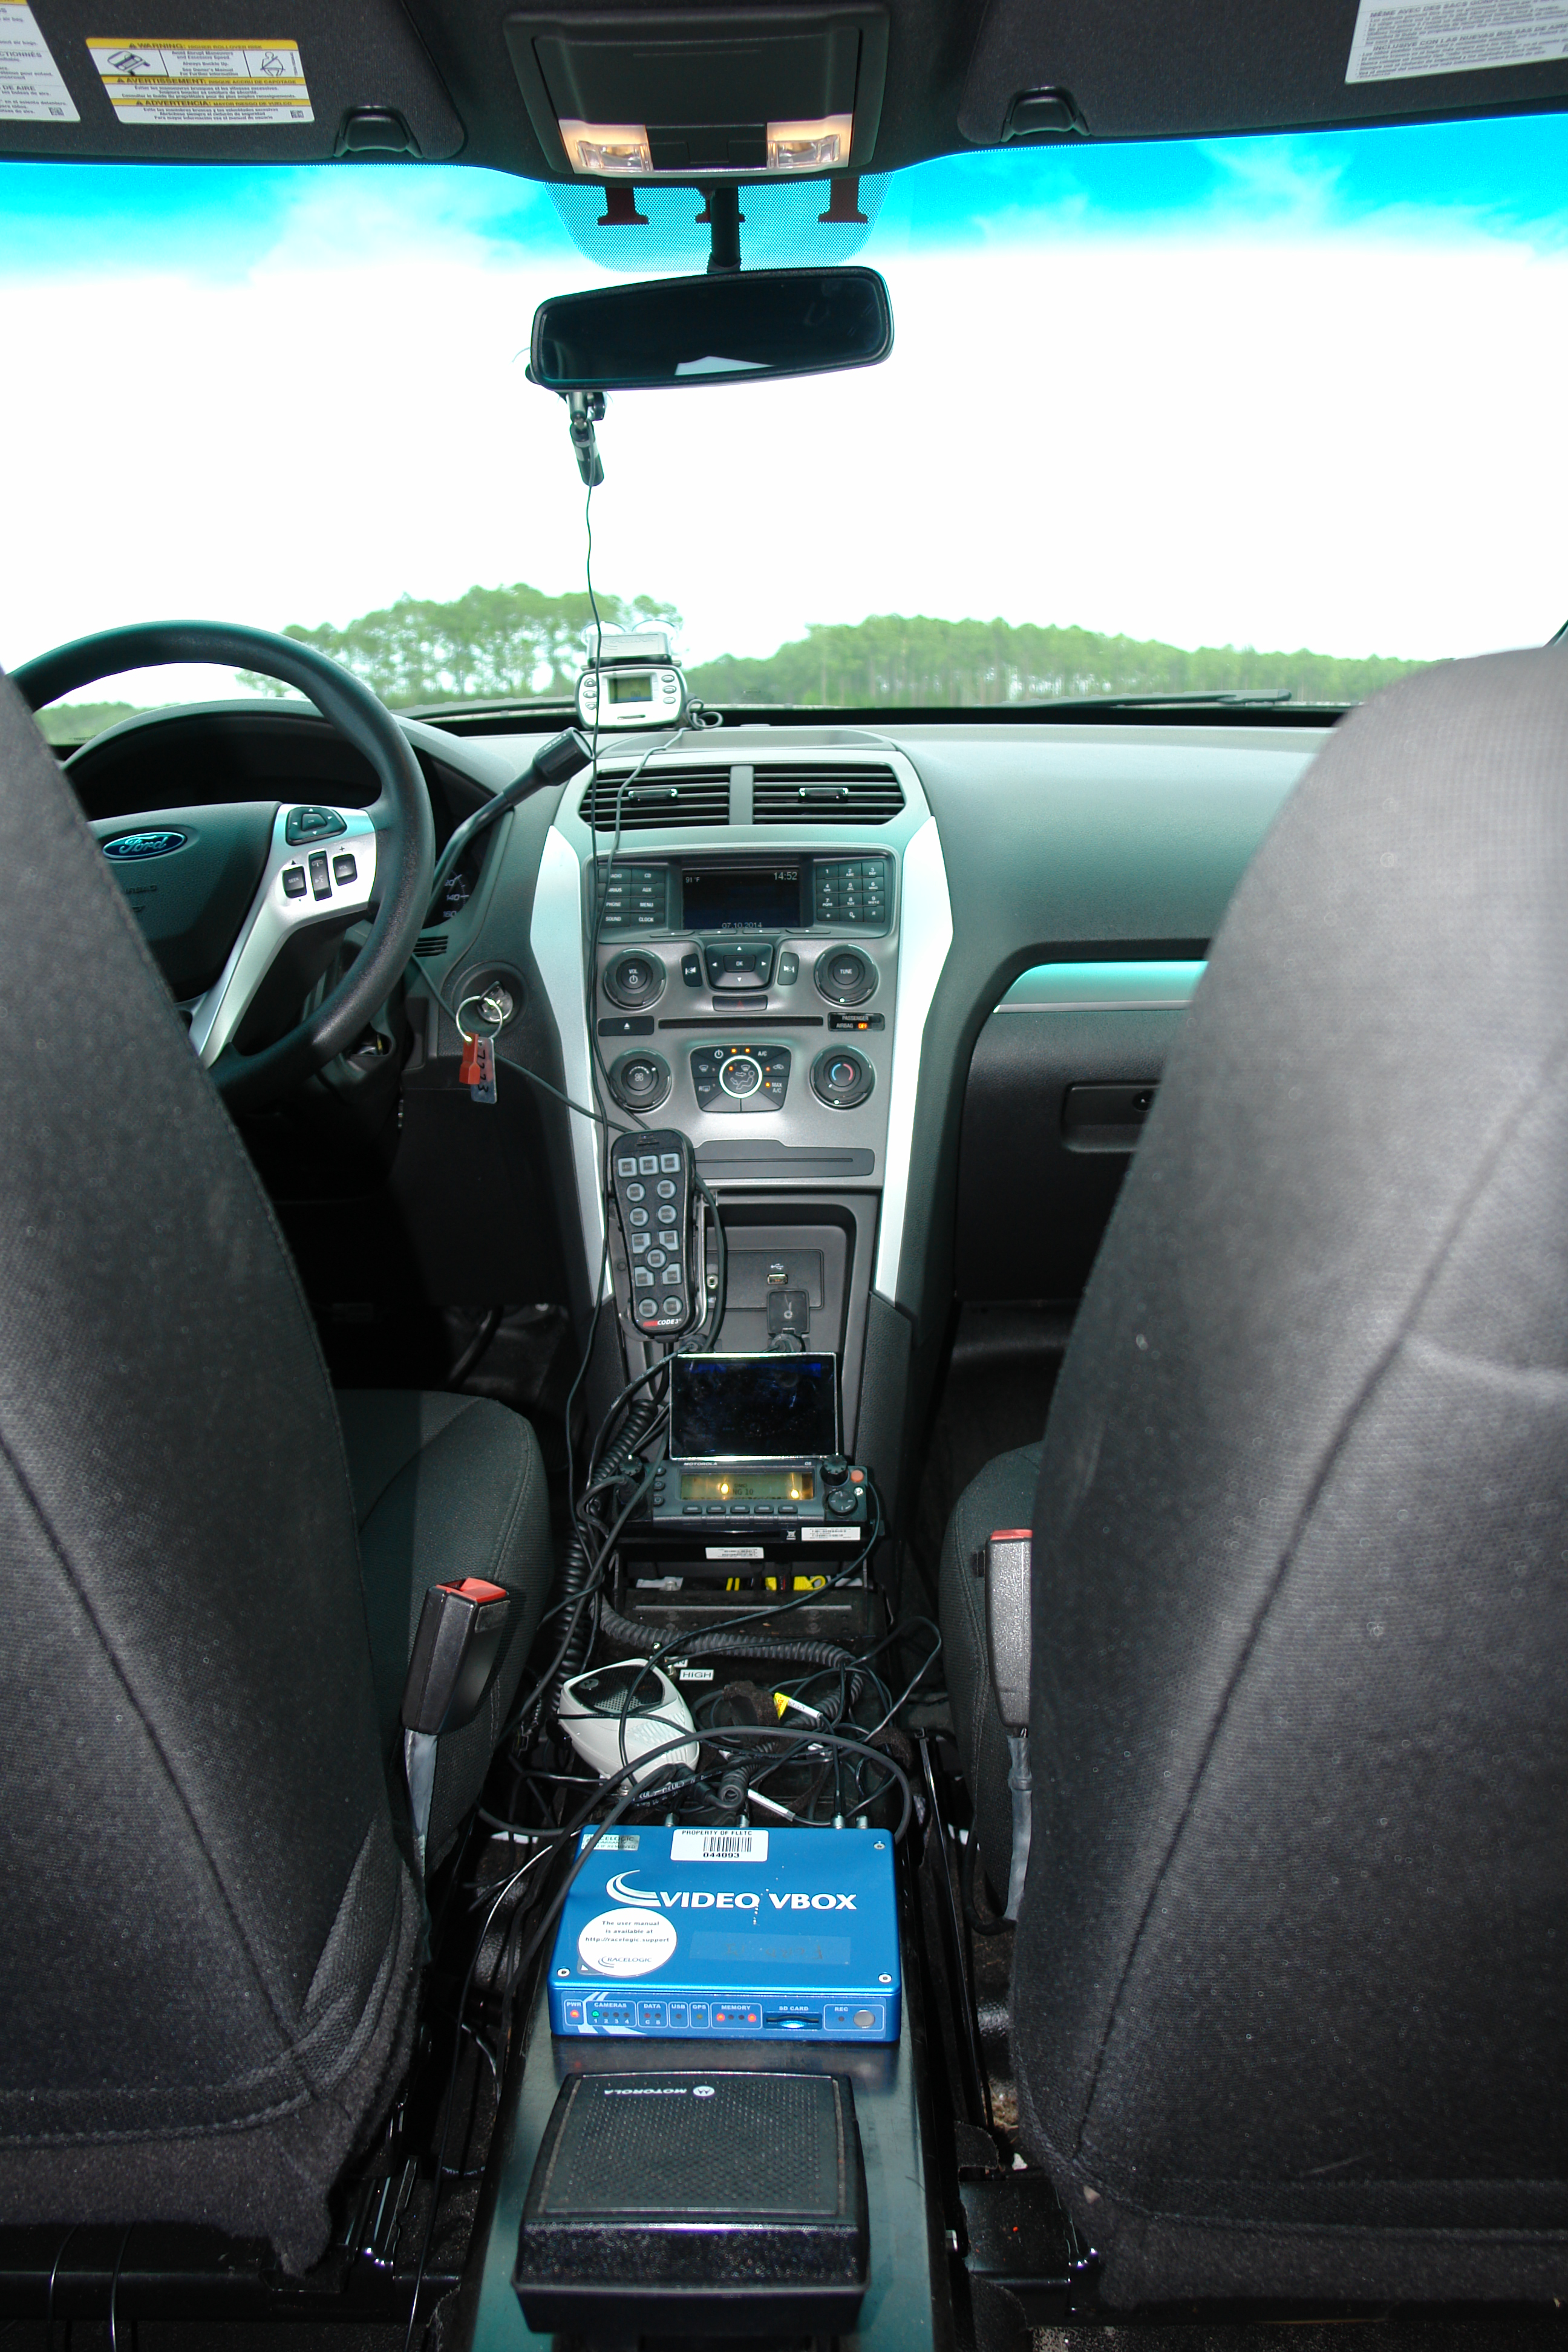 Configuration of data collection devices inside one of the test vehicles.